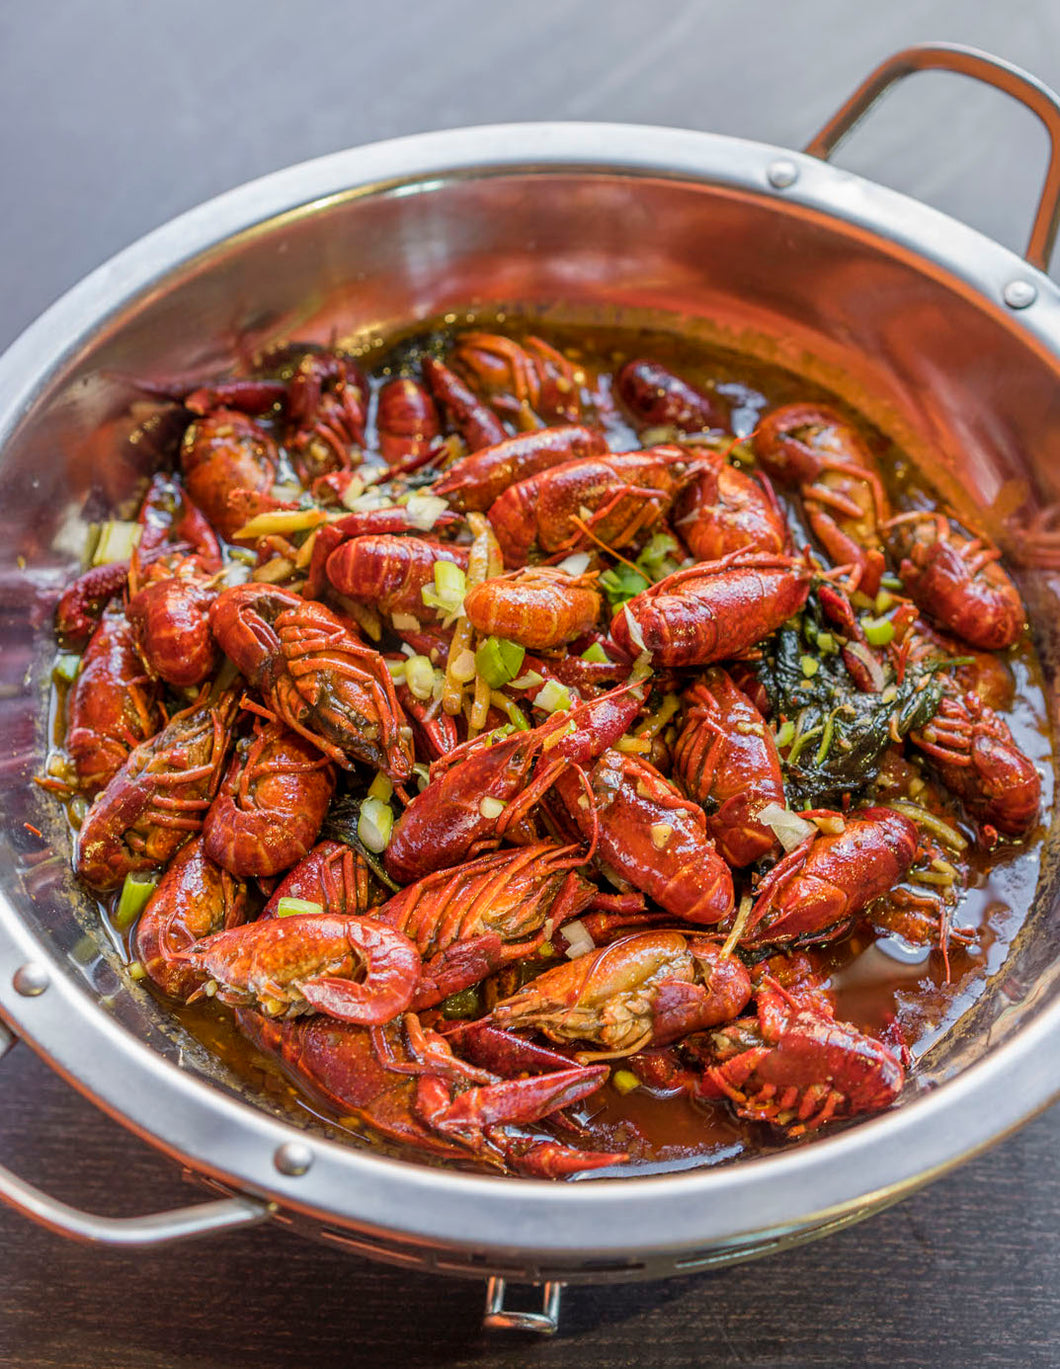 Hot and Spicy Crawfish 麻辣小龙虾